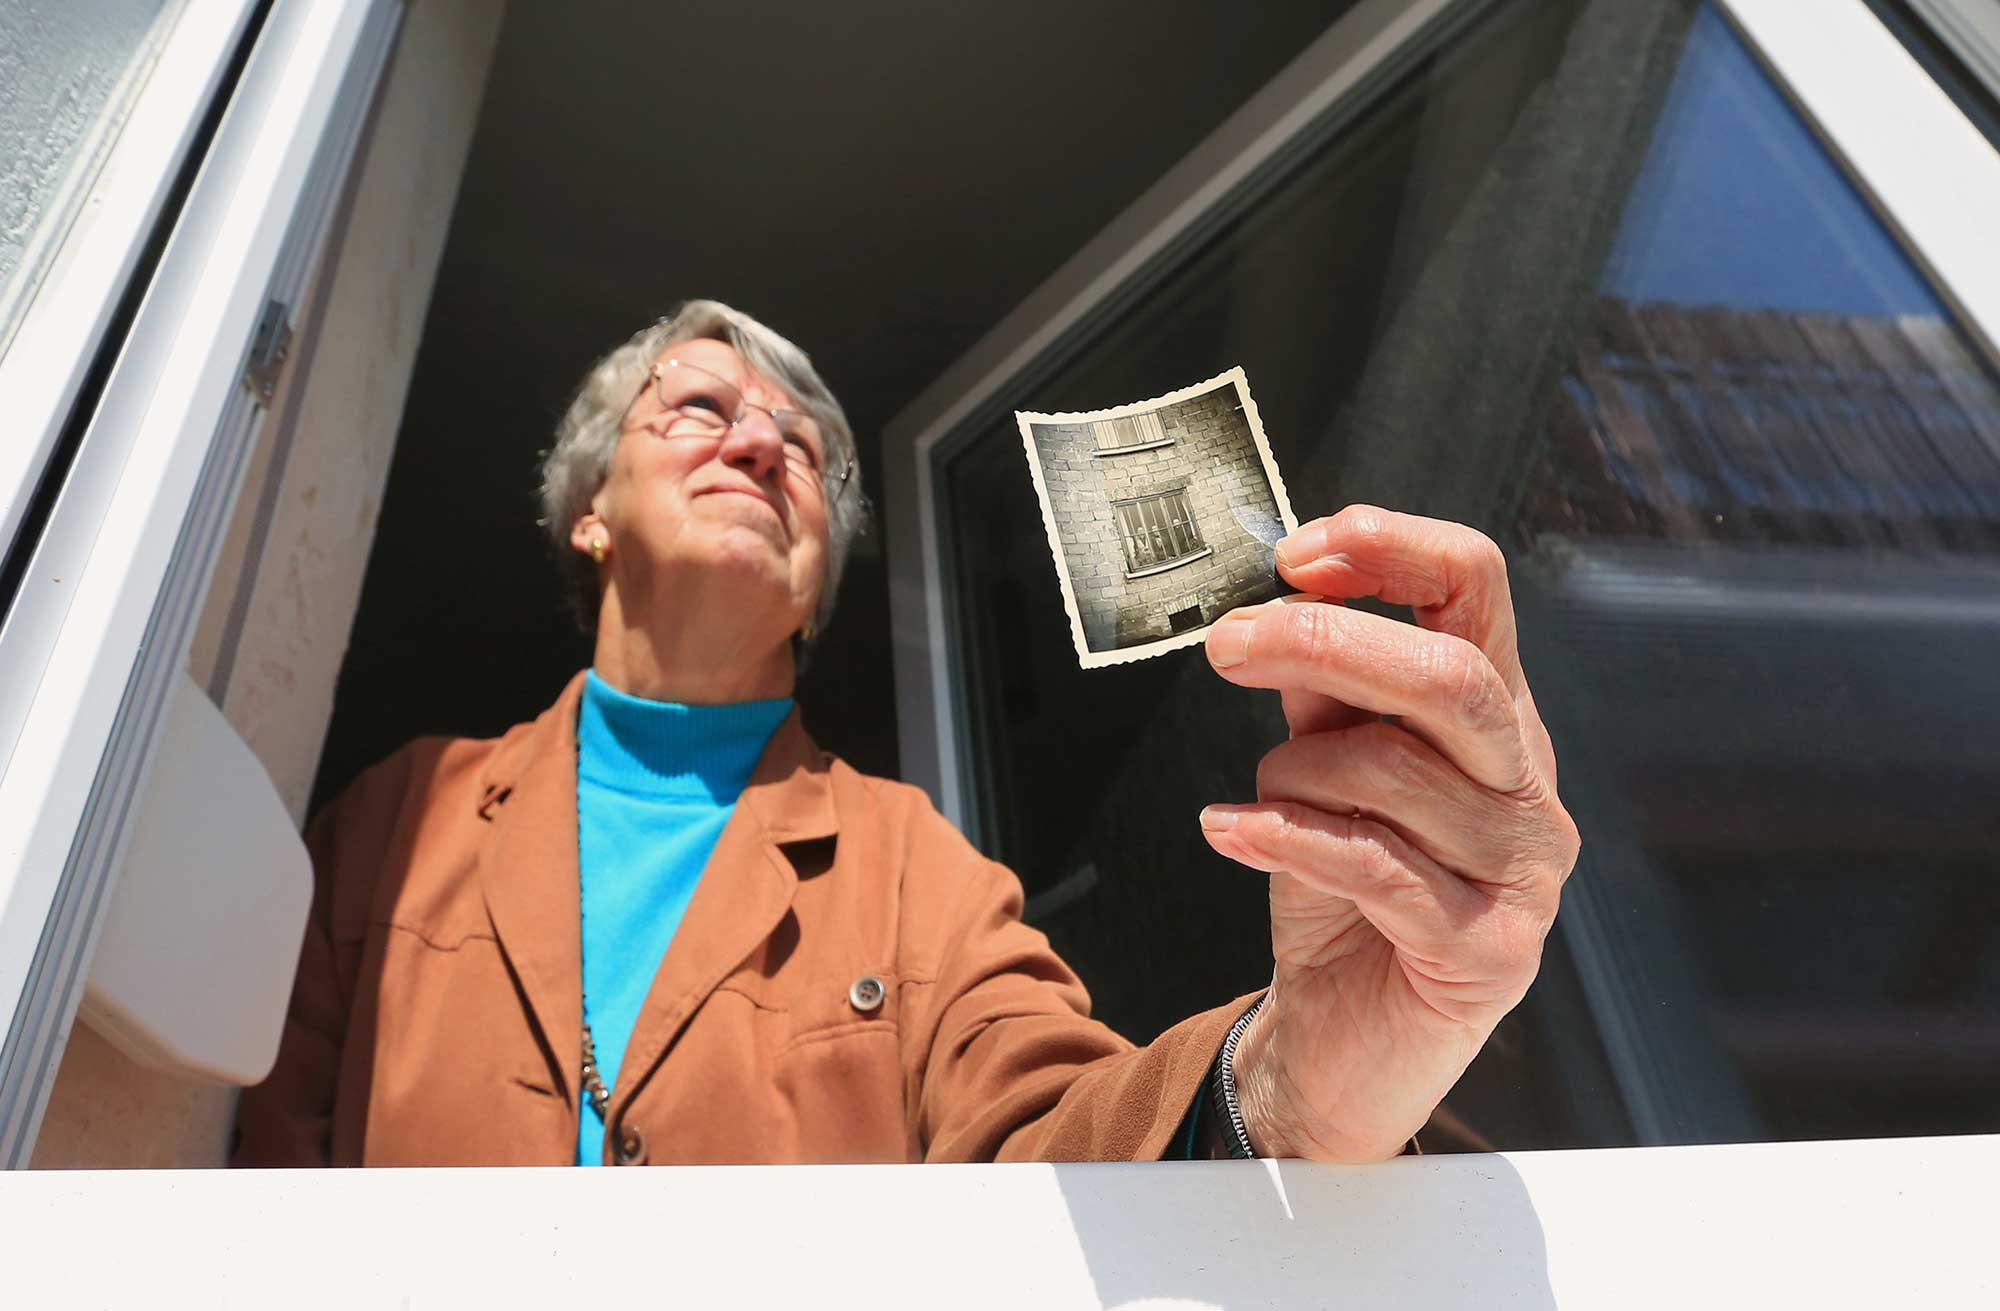 Edith Foth holds a photograph standing at a window.